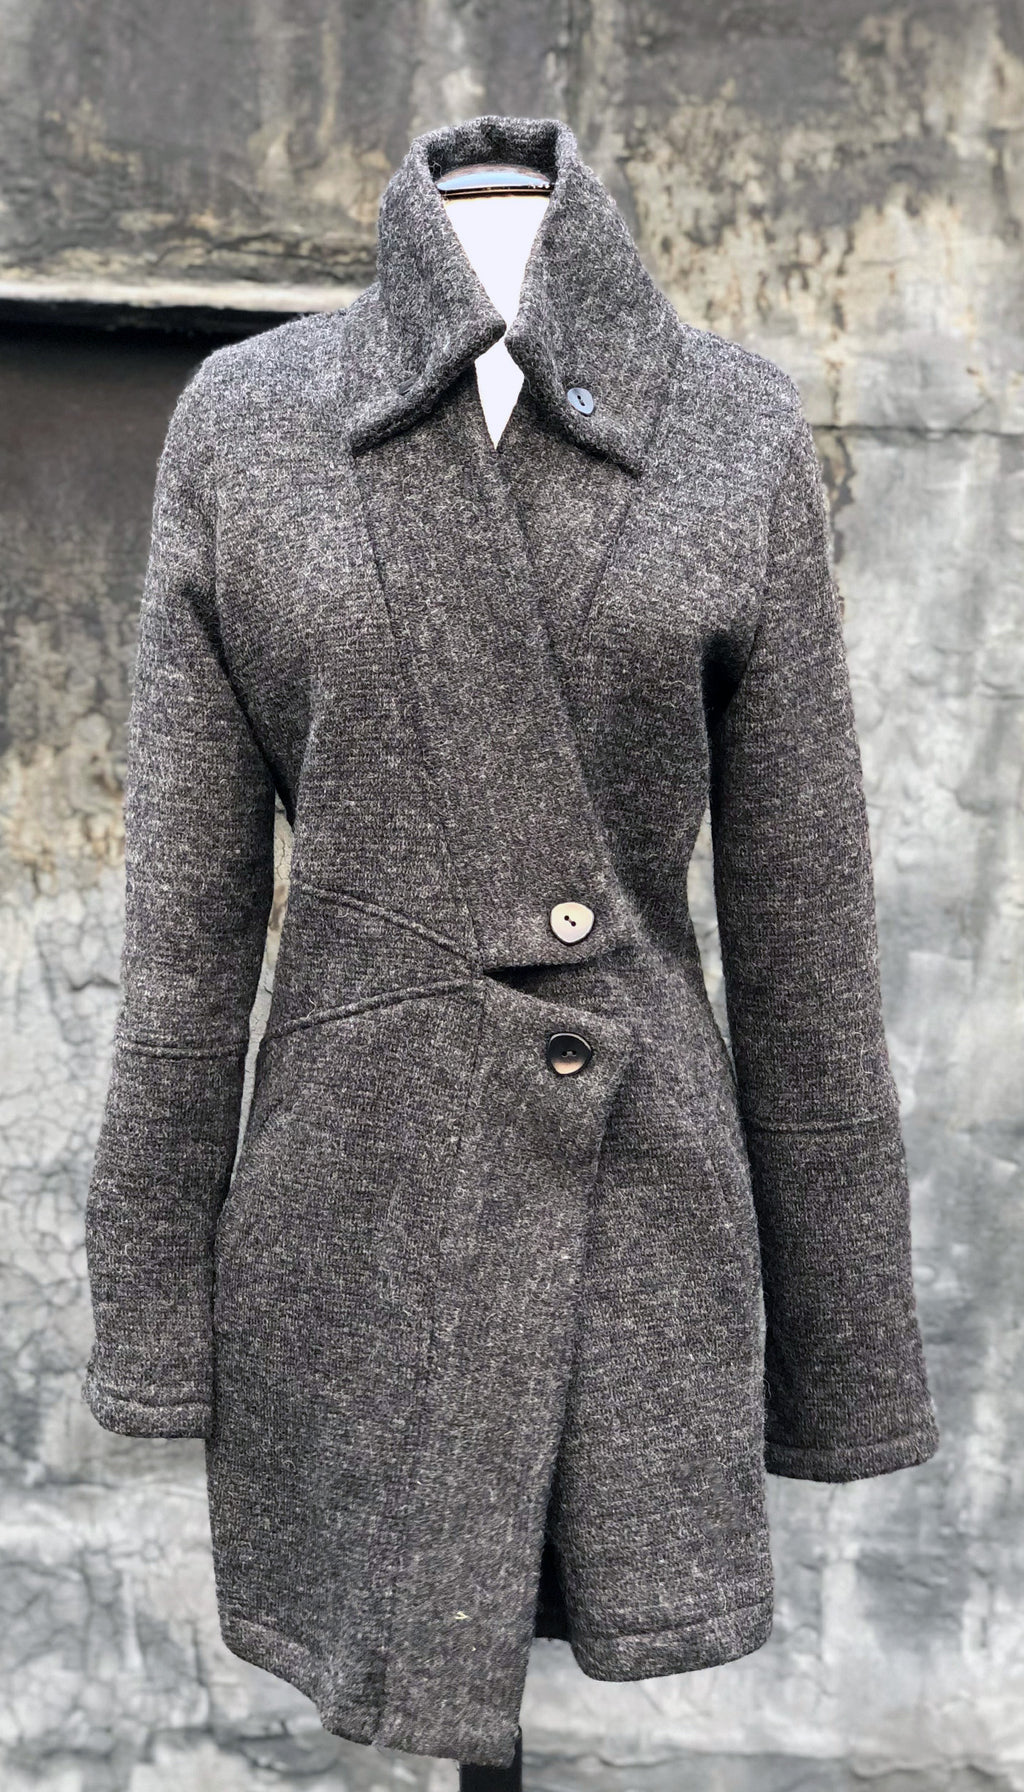 Classic Double collar wool knit sweater jacket: Charcoal